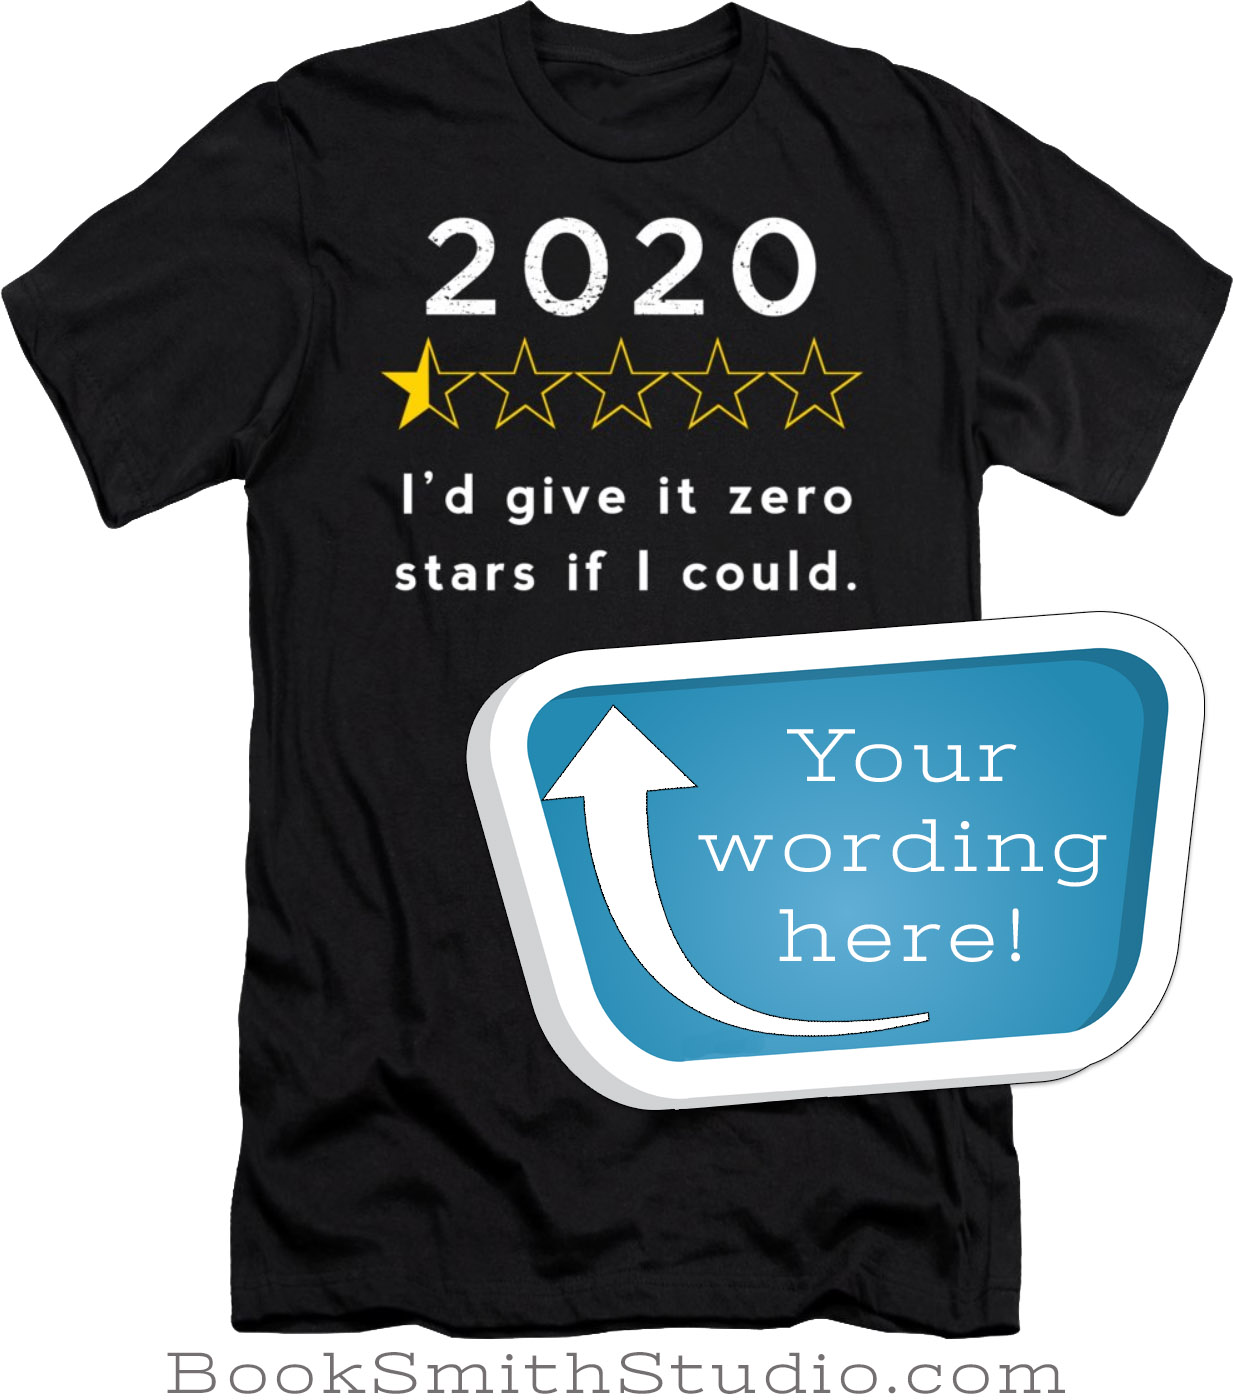 Custom 2020 Review Shirts with your wording!